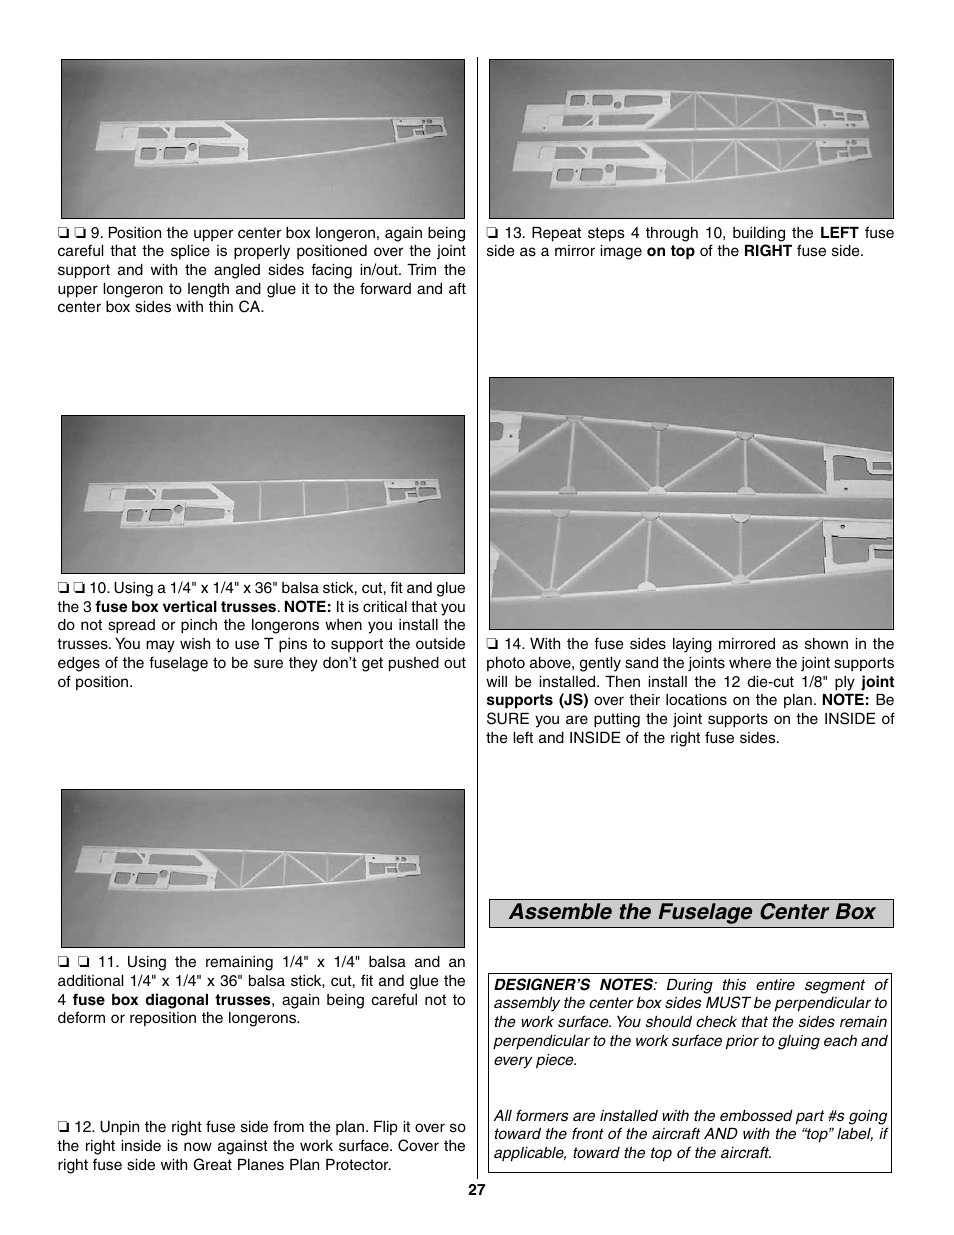 Assemble The Fuselage Center Box Great Planes Giant Extra 330l Kit Location Of Fuses In Power Distribution To Install Gpma0250 User Manual Page 27 54